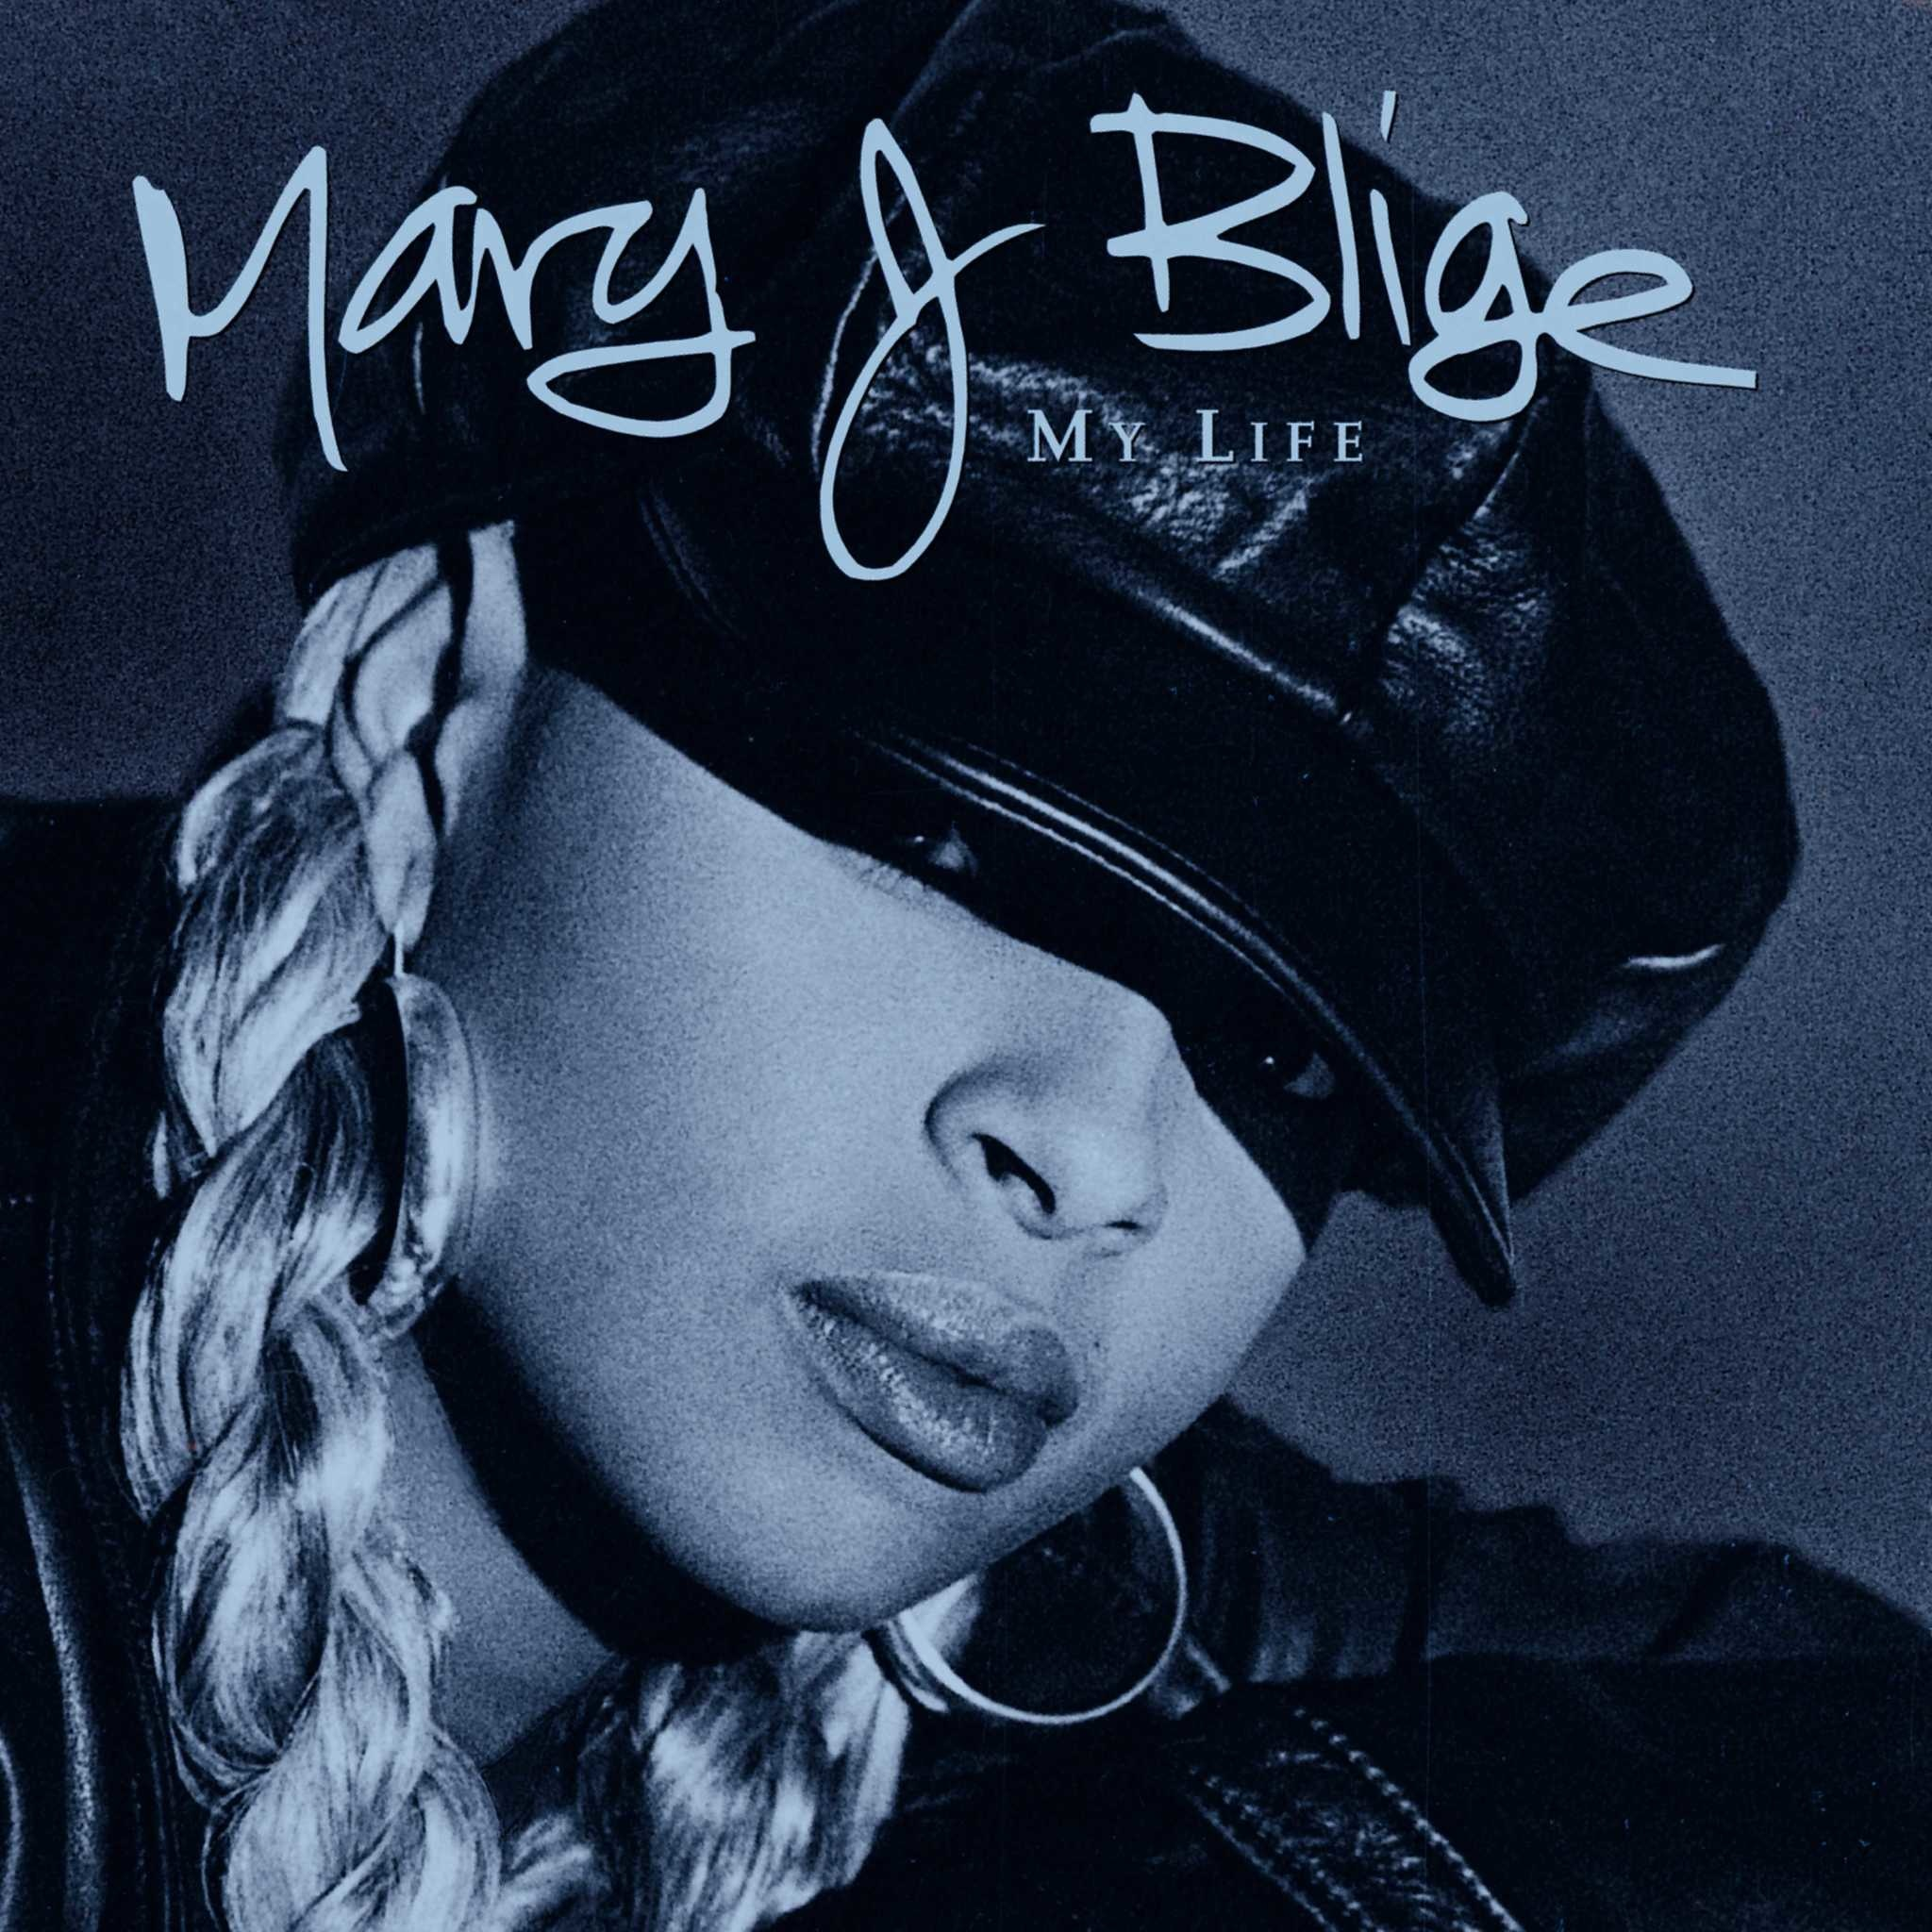 Universal Mary J. Blige - My Life